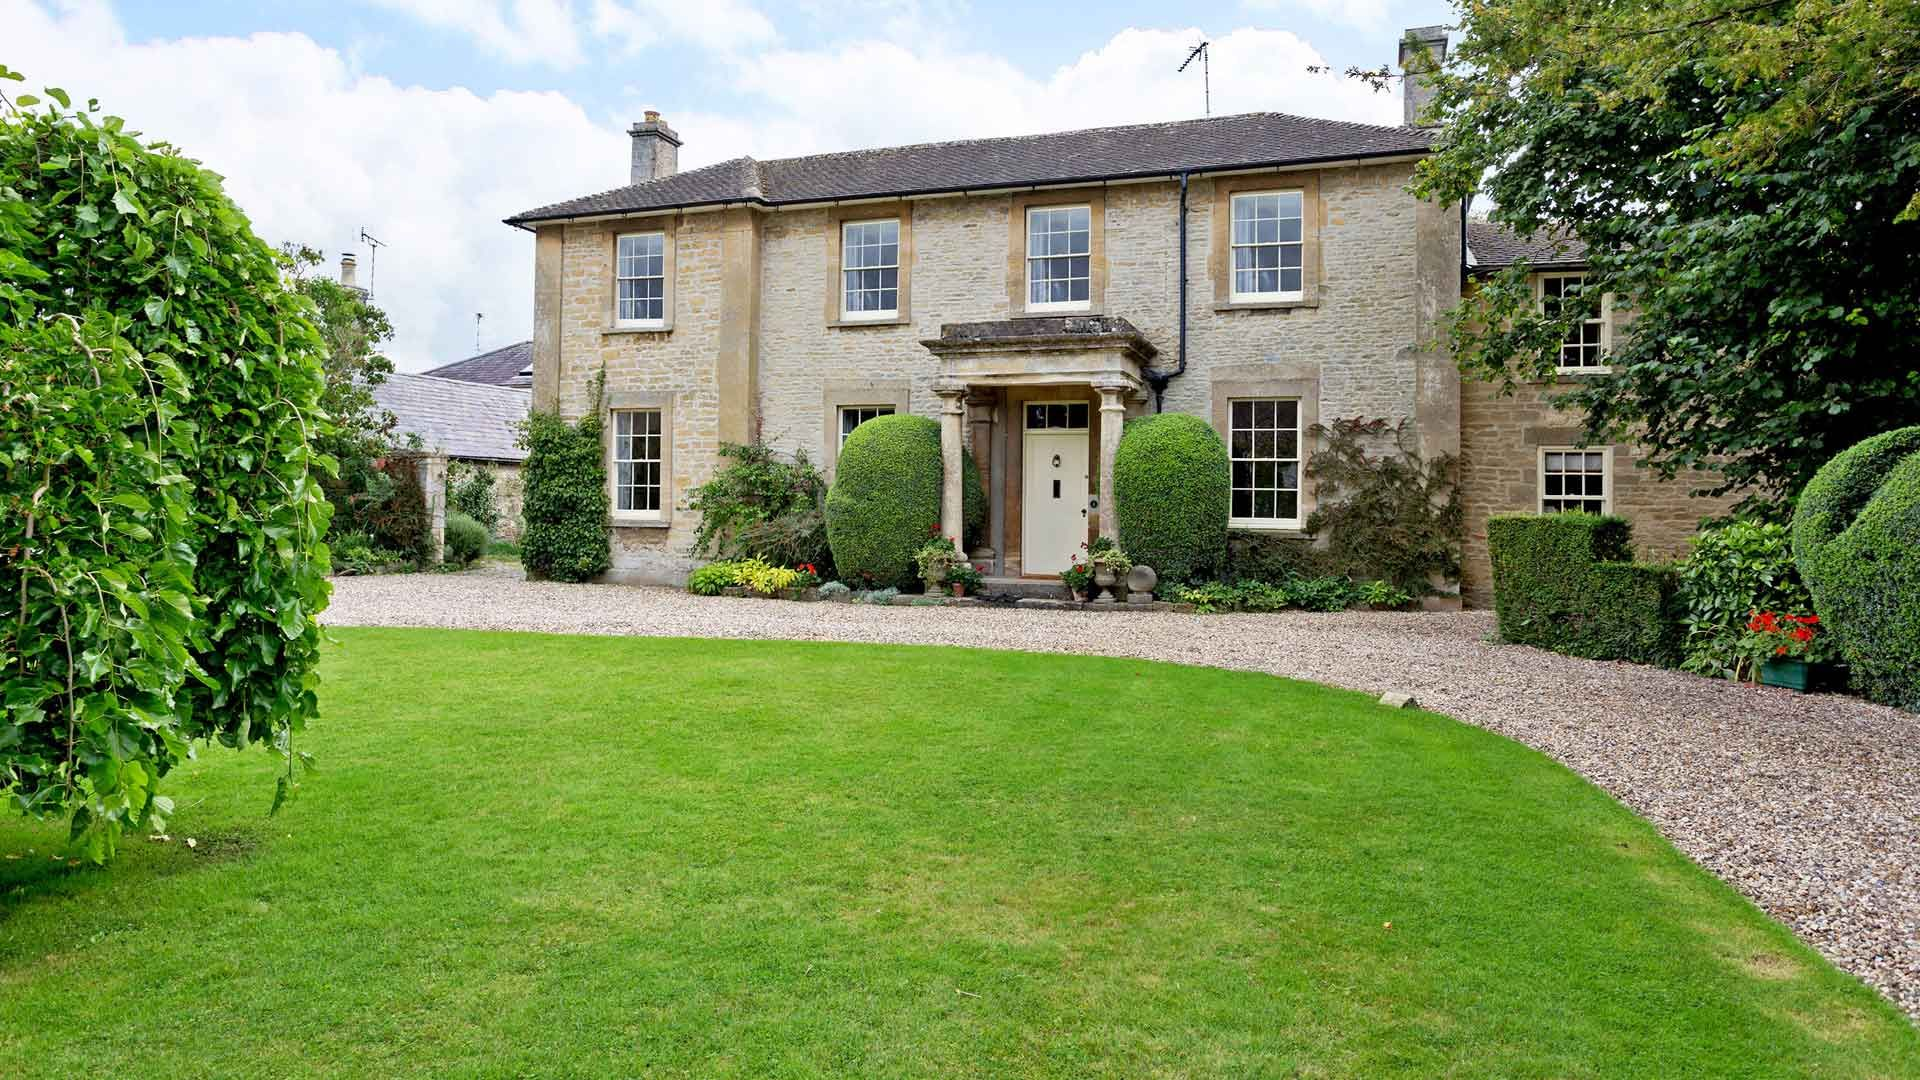 The Terrace House - StayCotswold